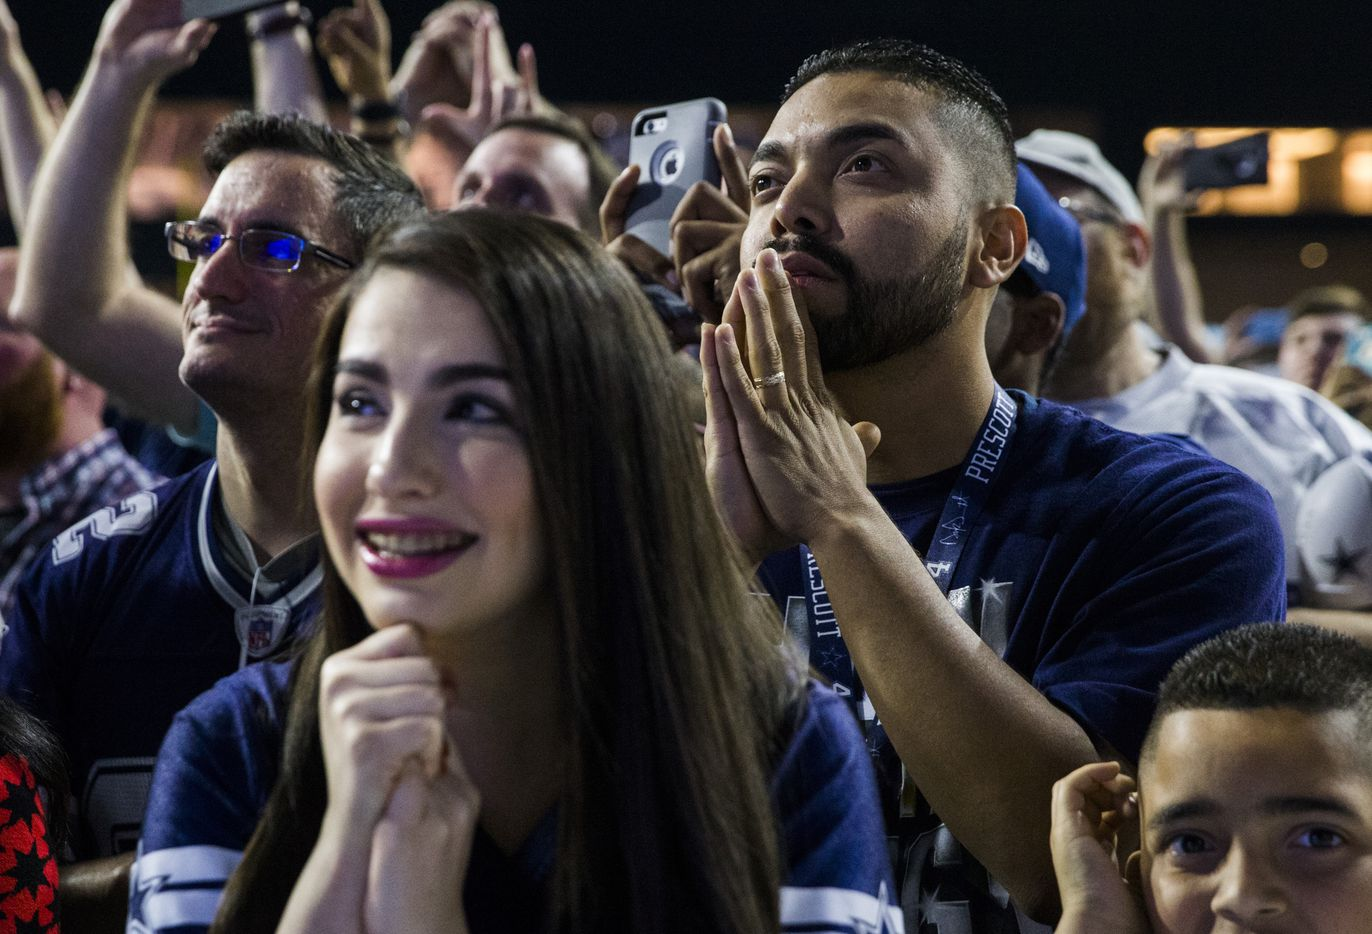 Dallas Cowboys fans Amber Williams and Jose Umanzor wait to hear the Cowboys' pick during the Dallas Cowboys' 2017 NFL Draft Party on Thursday, April 27, 2017, at The Star in Frisco.